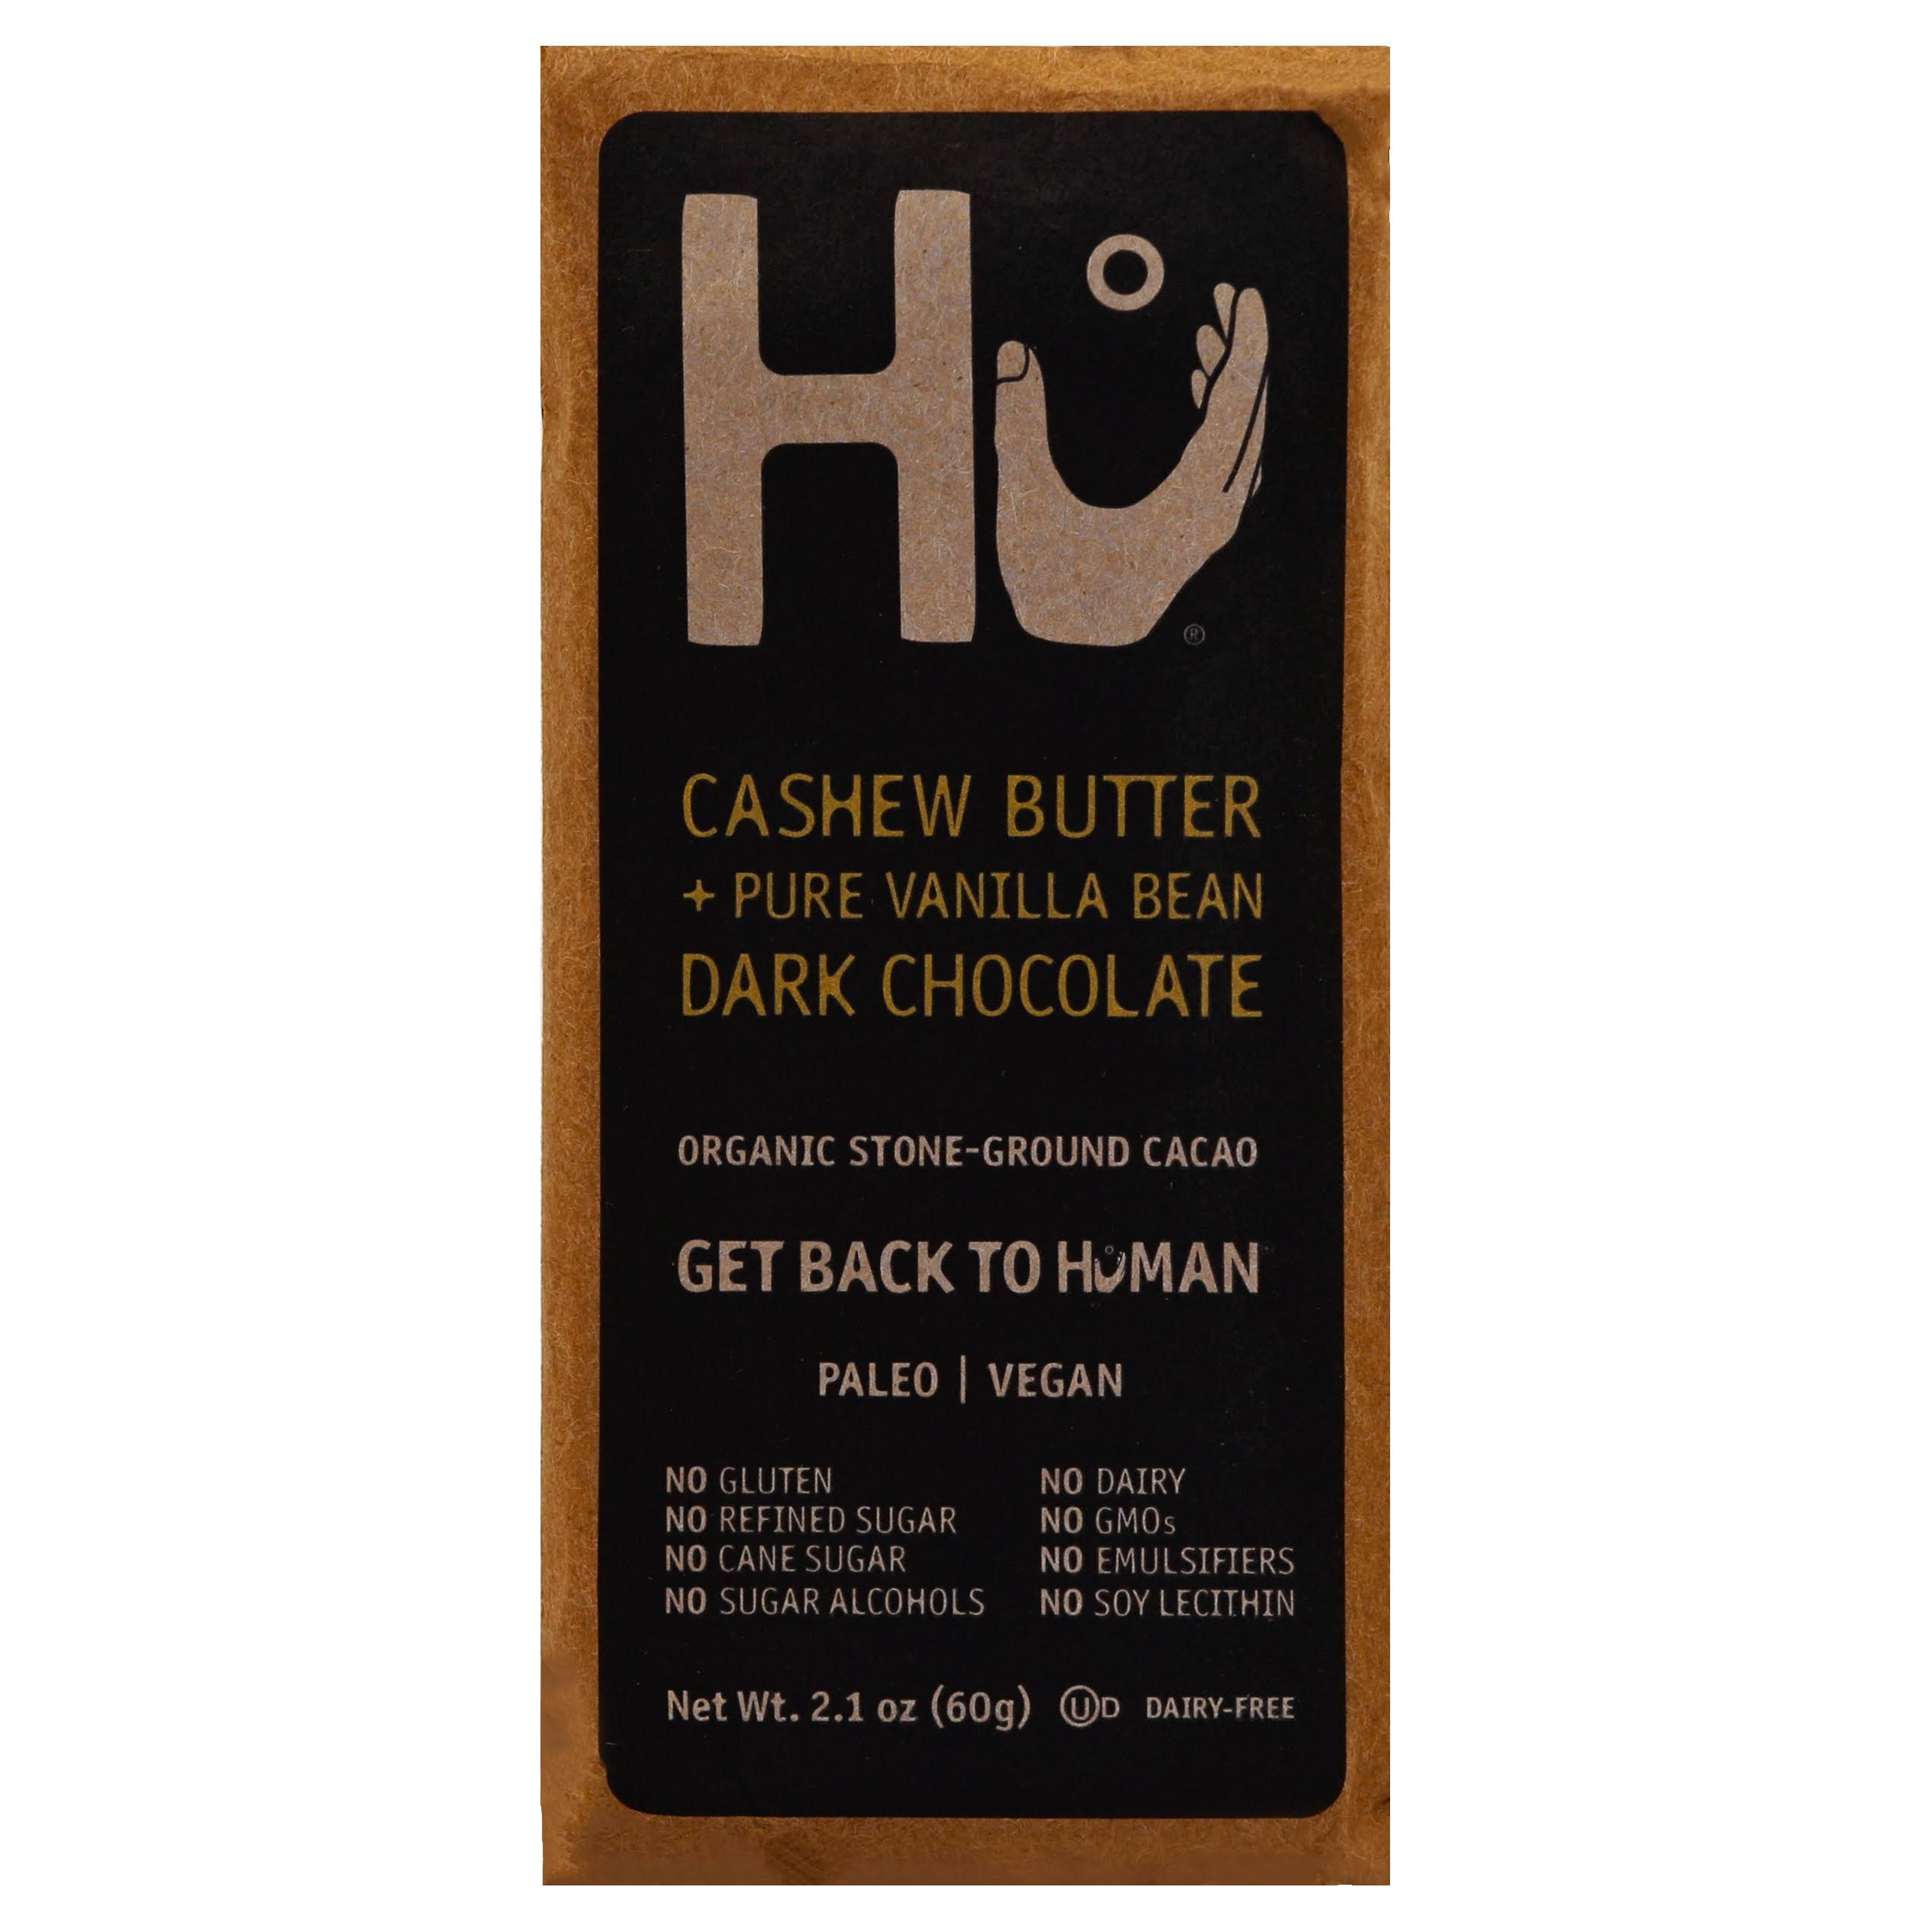 HU Organic Dark Chocolate Bar - Cashew Butter, Pure Vanilla Bean, 2.1oz